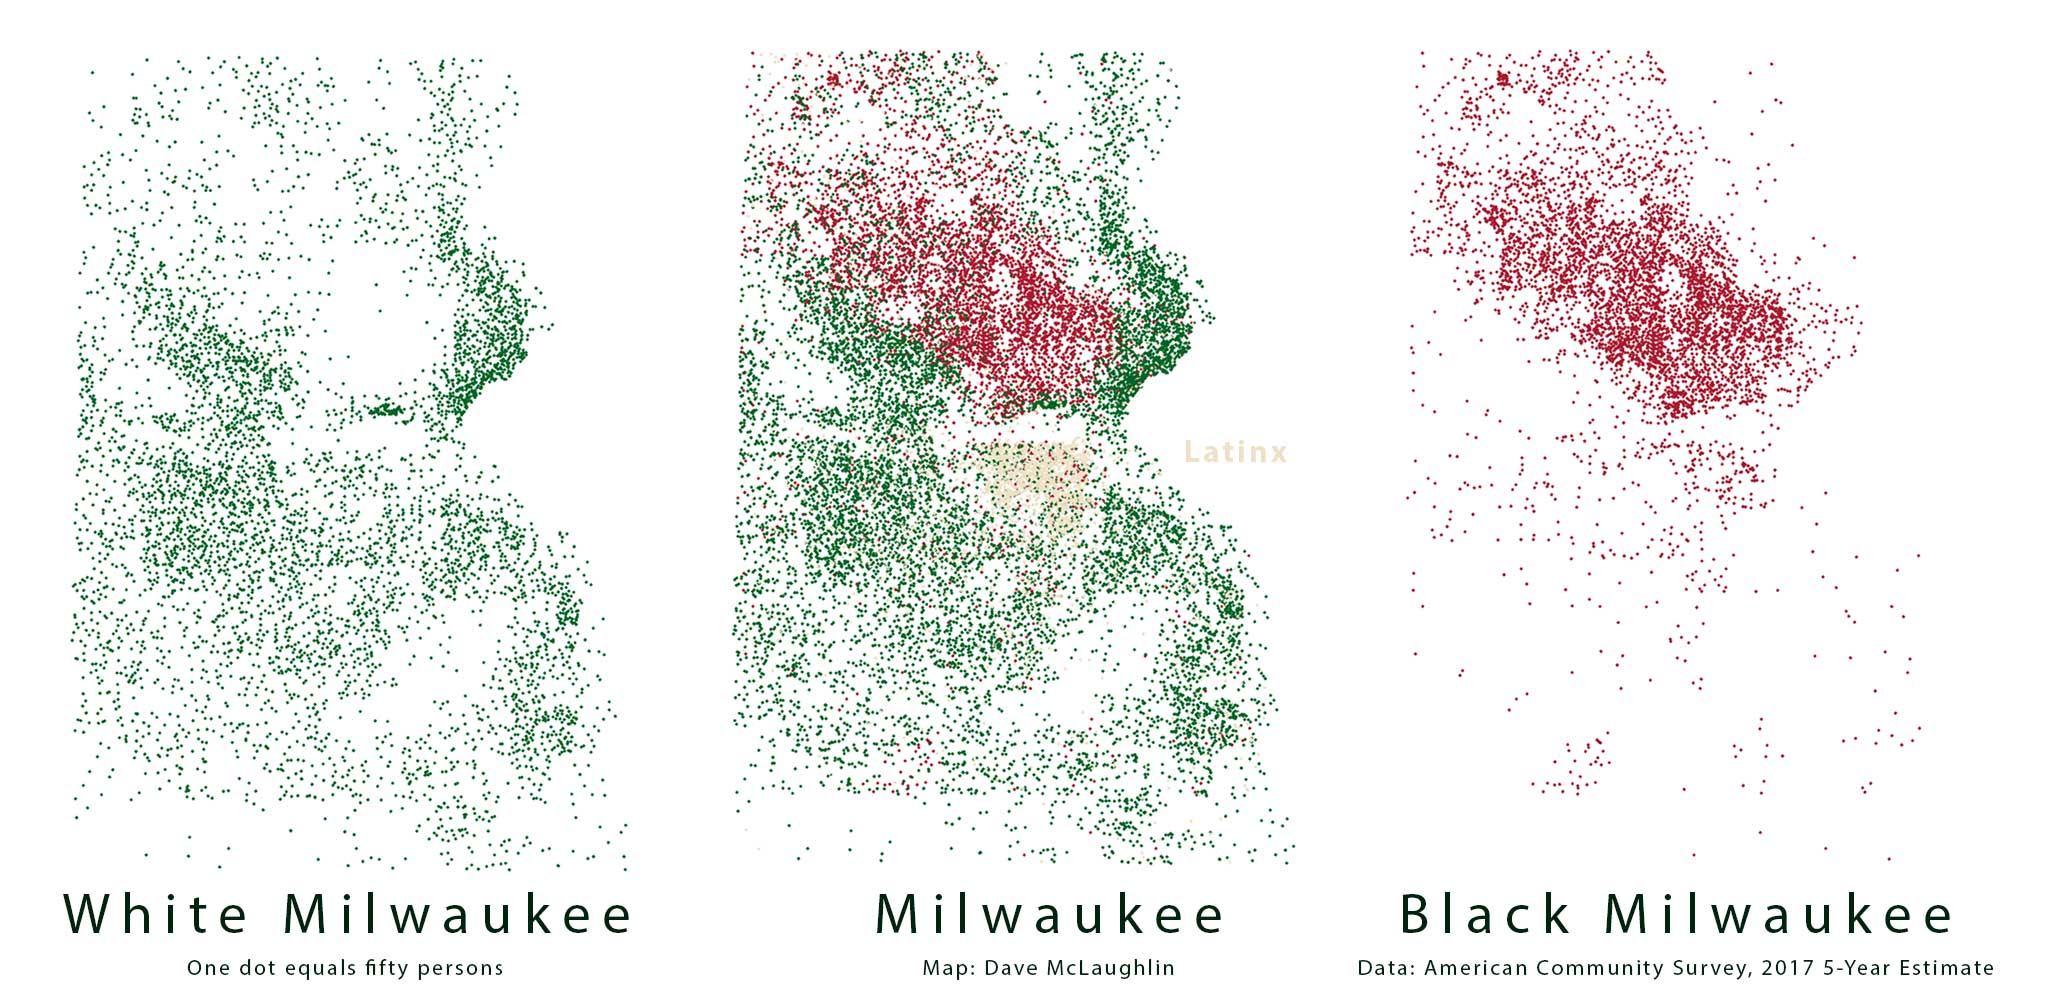 Three maps of Milwaukee, showing the white and black populations, as well as the three major racial groups together.